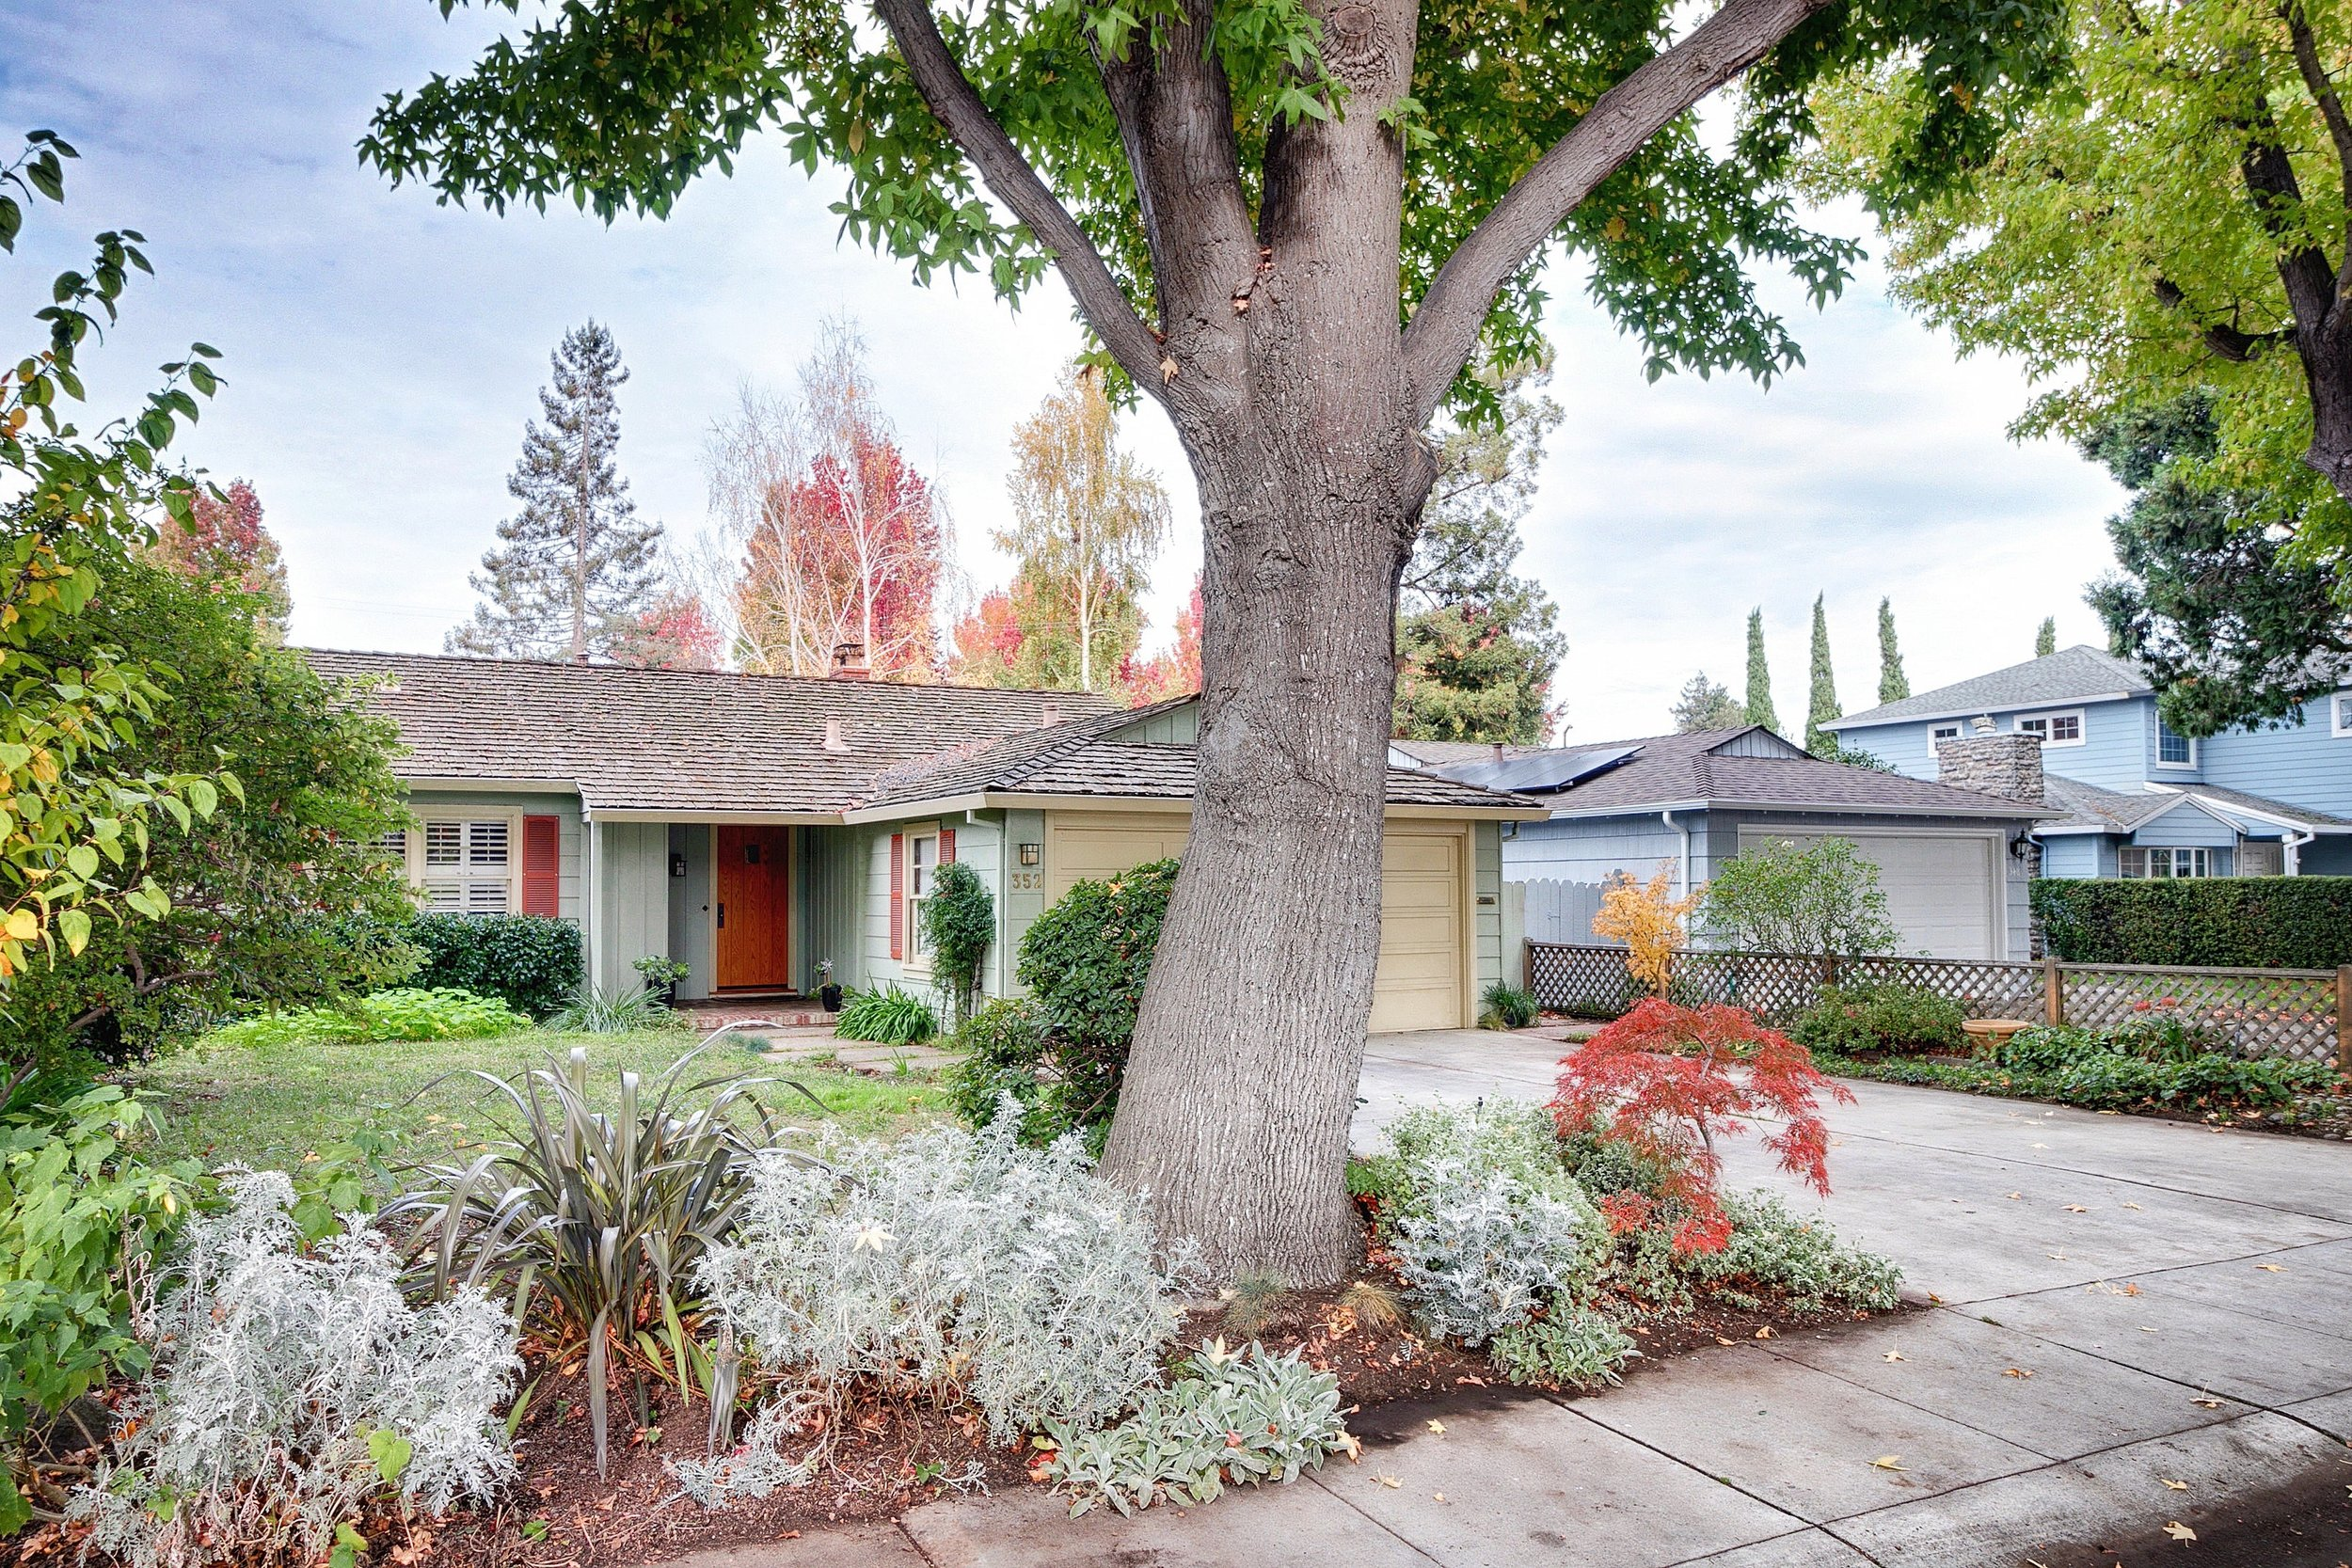 SOLD: 352 Hedge Rd, Menlo Park  Chef's delight in highly desirable Suburban Park  Offered at $1,835,000